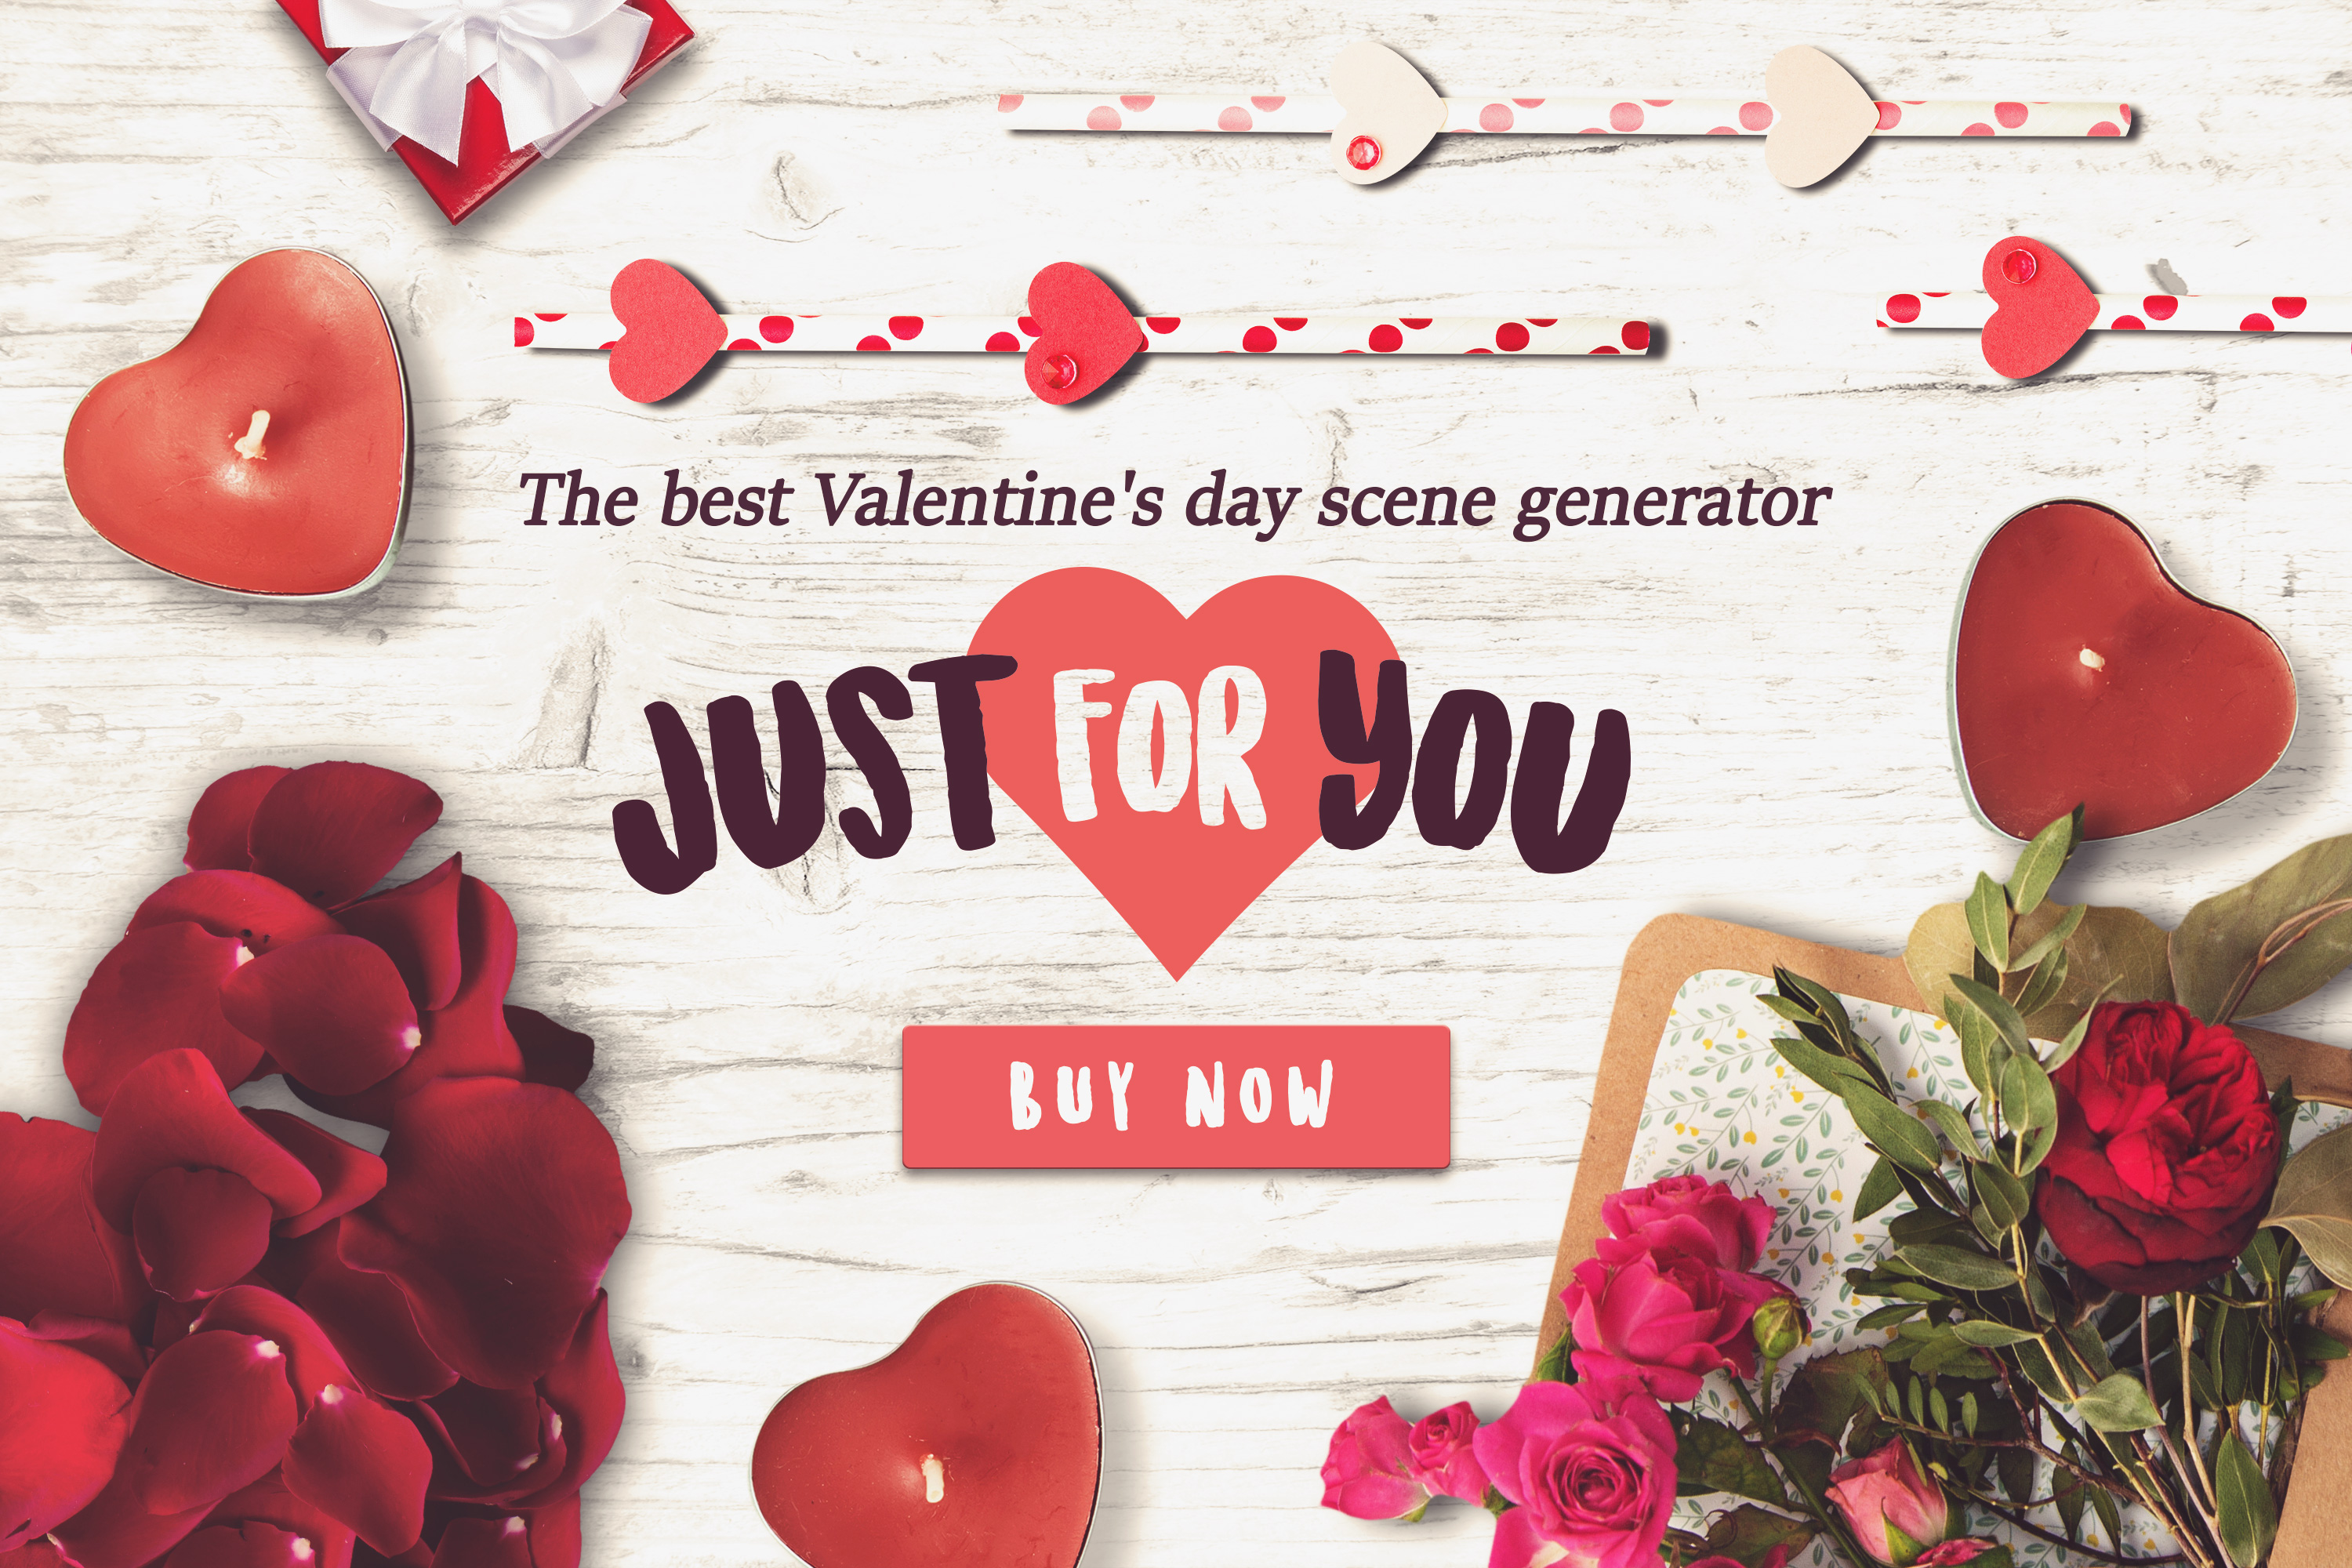 All You Need Is Love Scene Generator